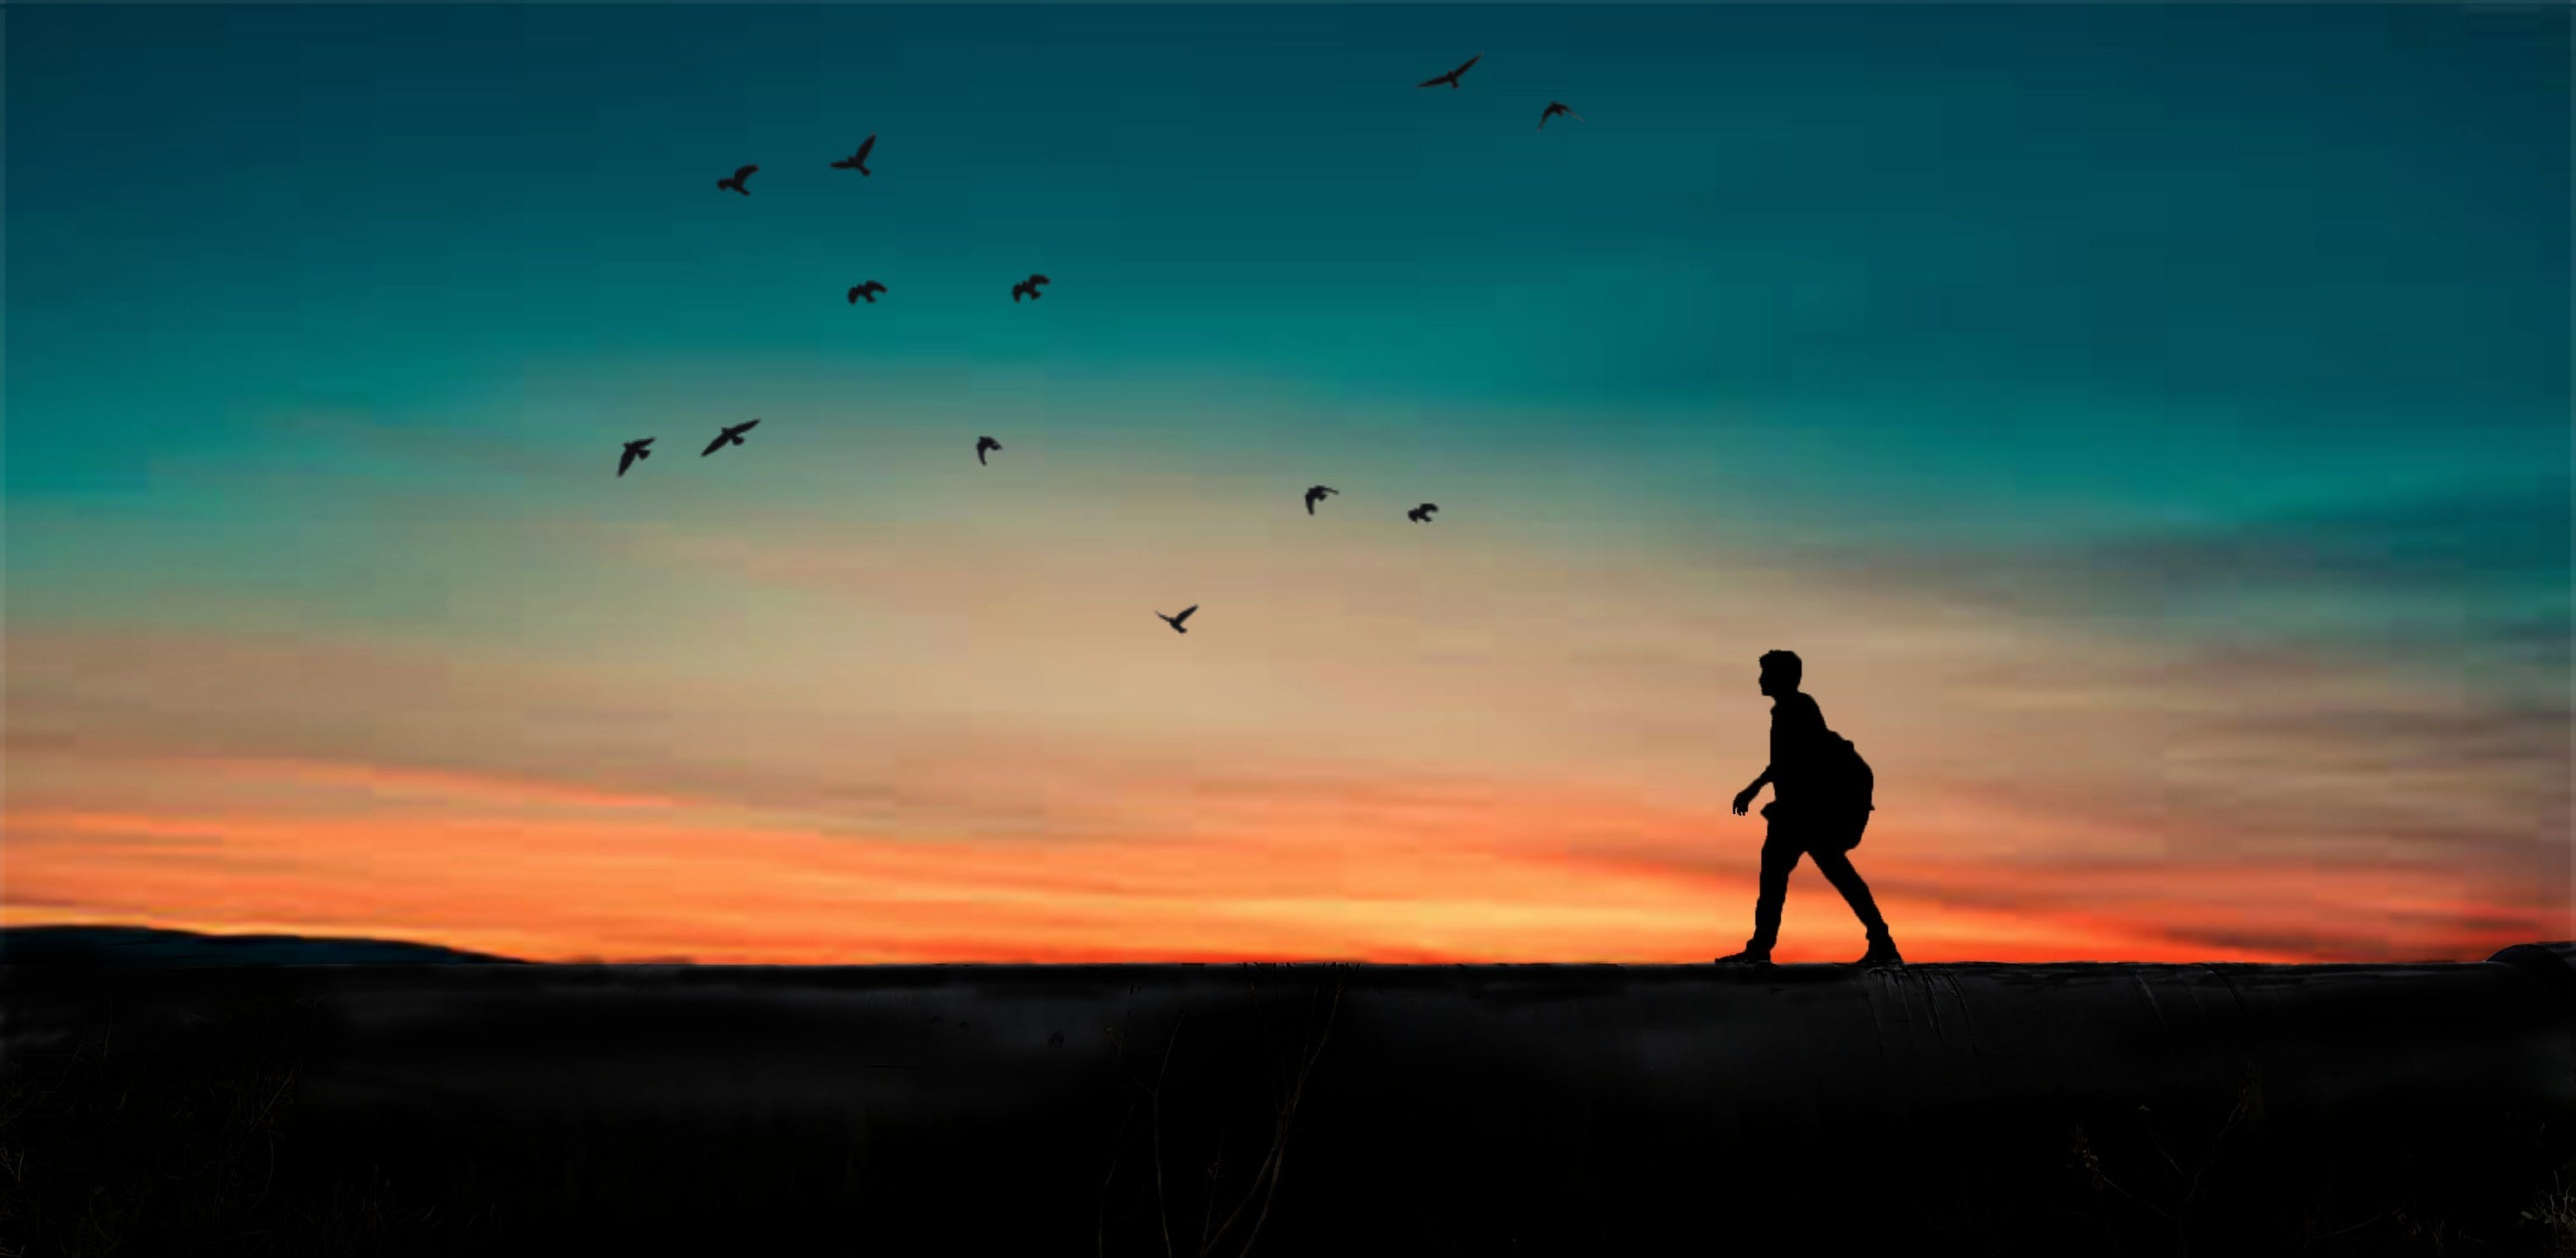 Silhouette of Person Walking